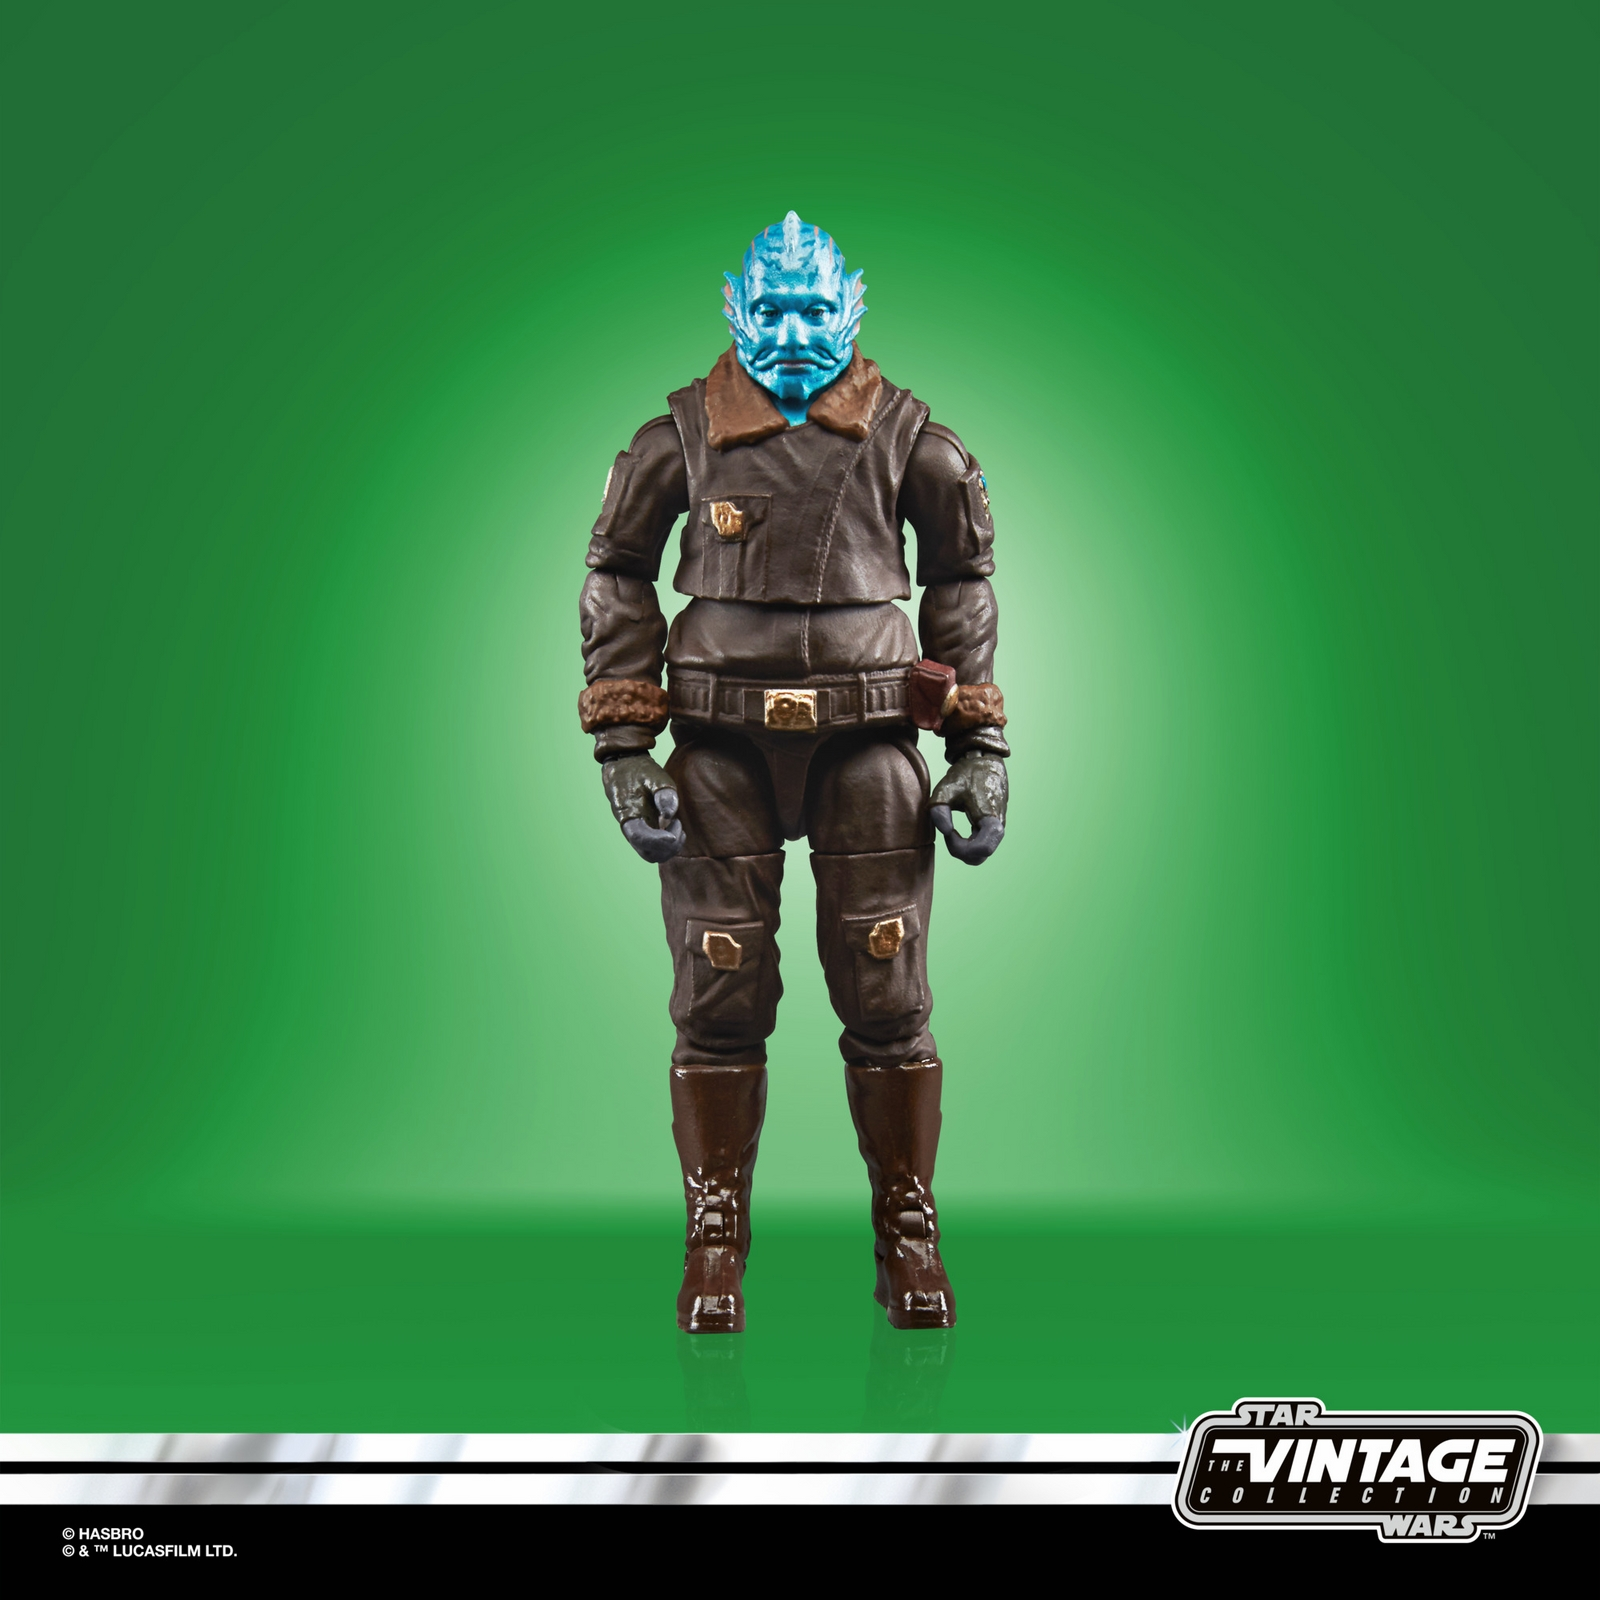 STAR%20WARS%20THE%20VINTAGE%20COLLECTION%203.75-INCH%20THE%20MYTHROL%20Figure%20-%20oop%20(3).jpg